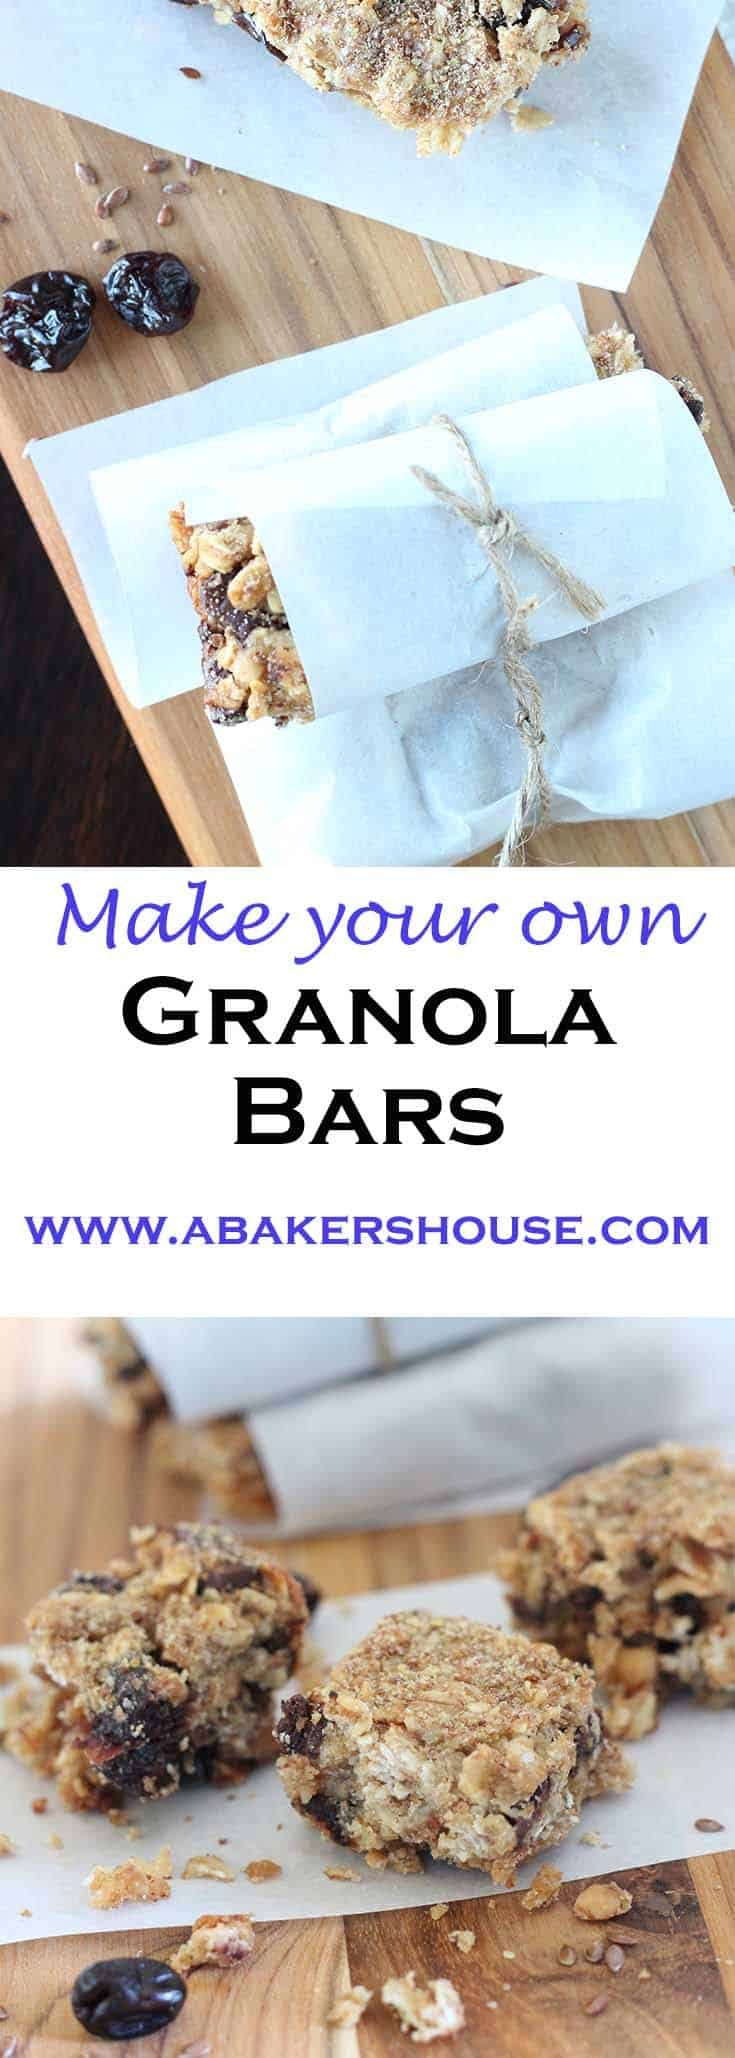 Make your own granola bars are the solution to snacking on the go. Filled with ingredients to help you refuel your energy when the tank is running low. #granola #healthy #healthysnack #wholefoods #cleaneating #abakershouse